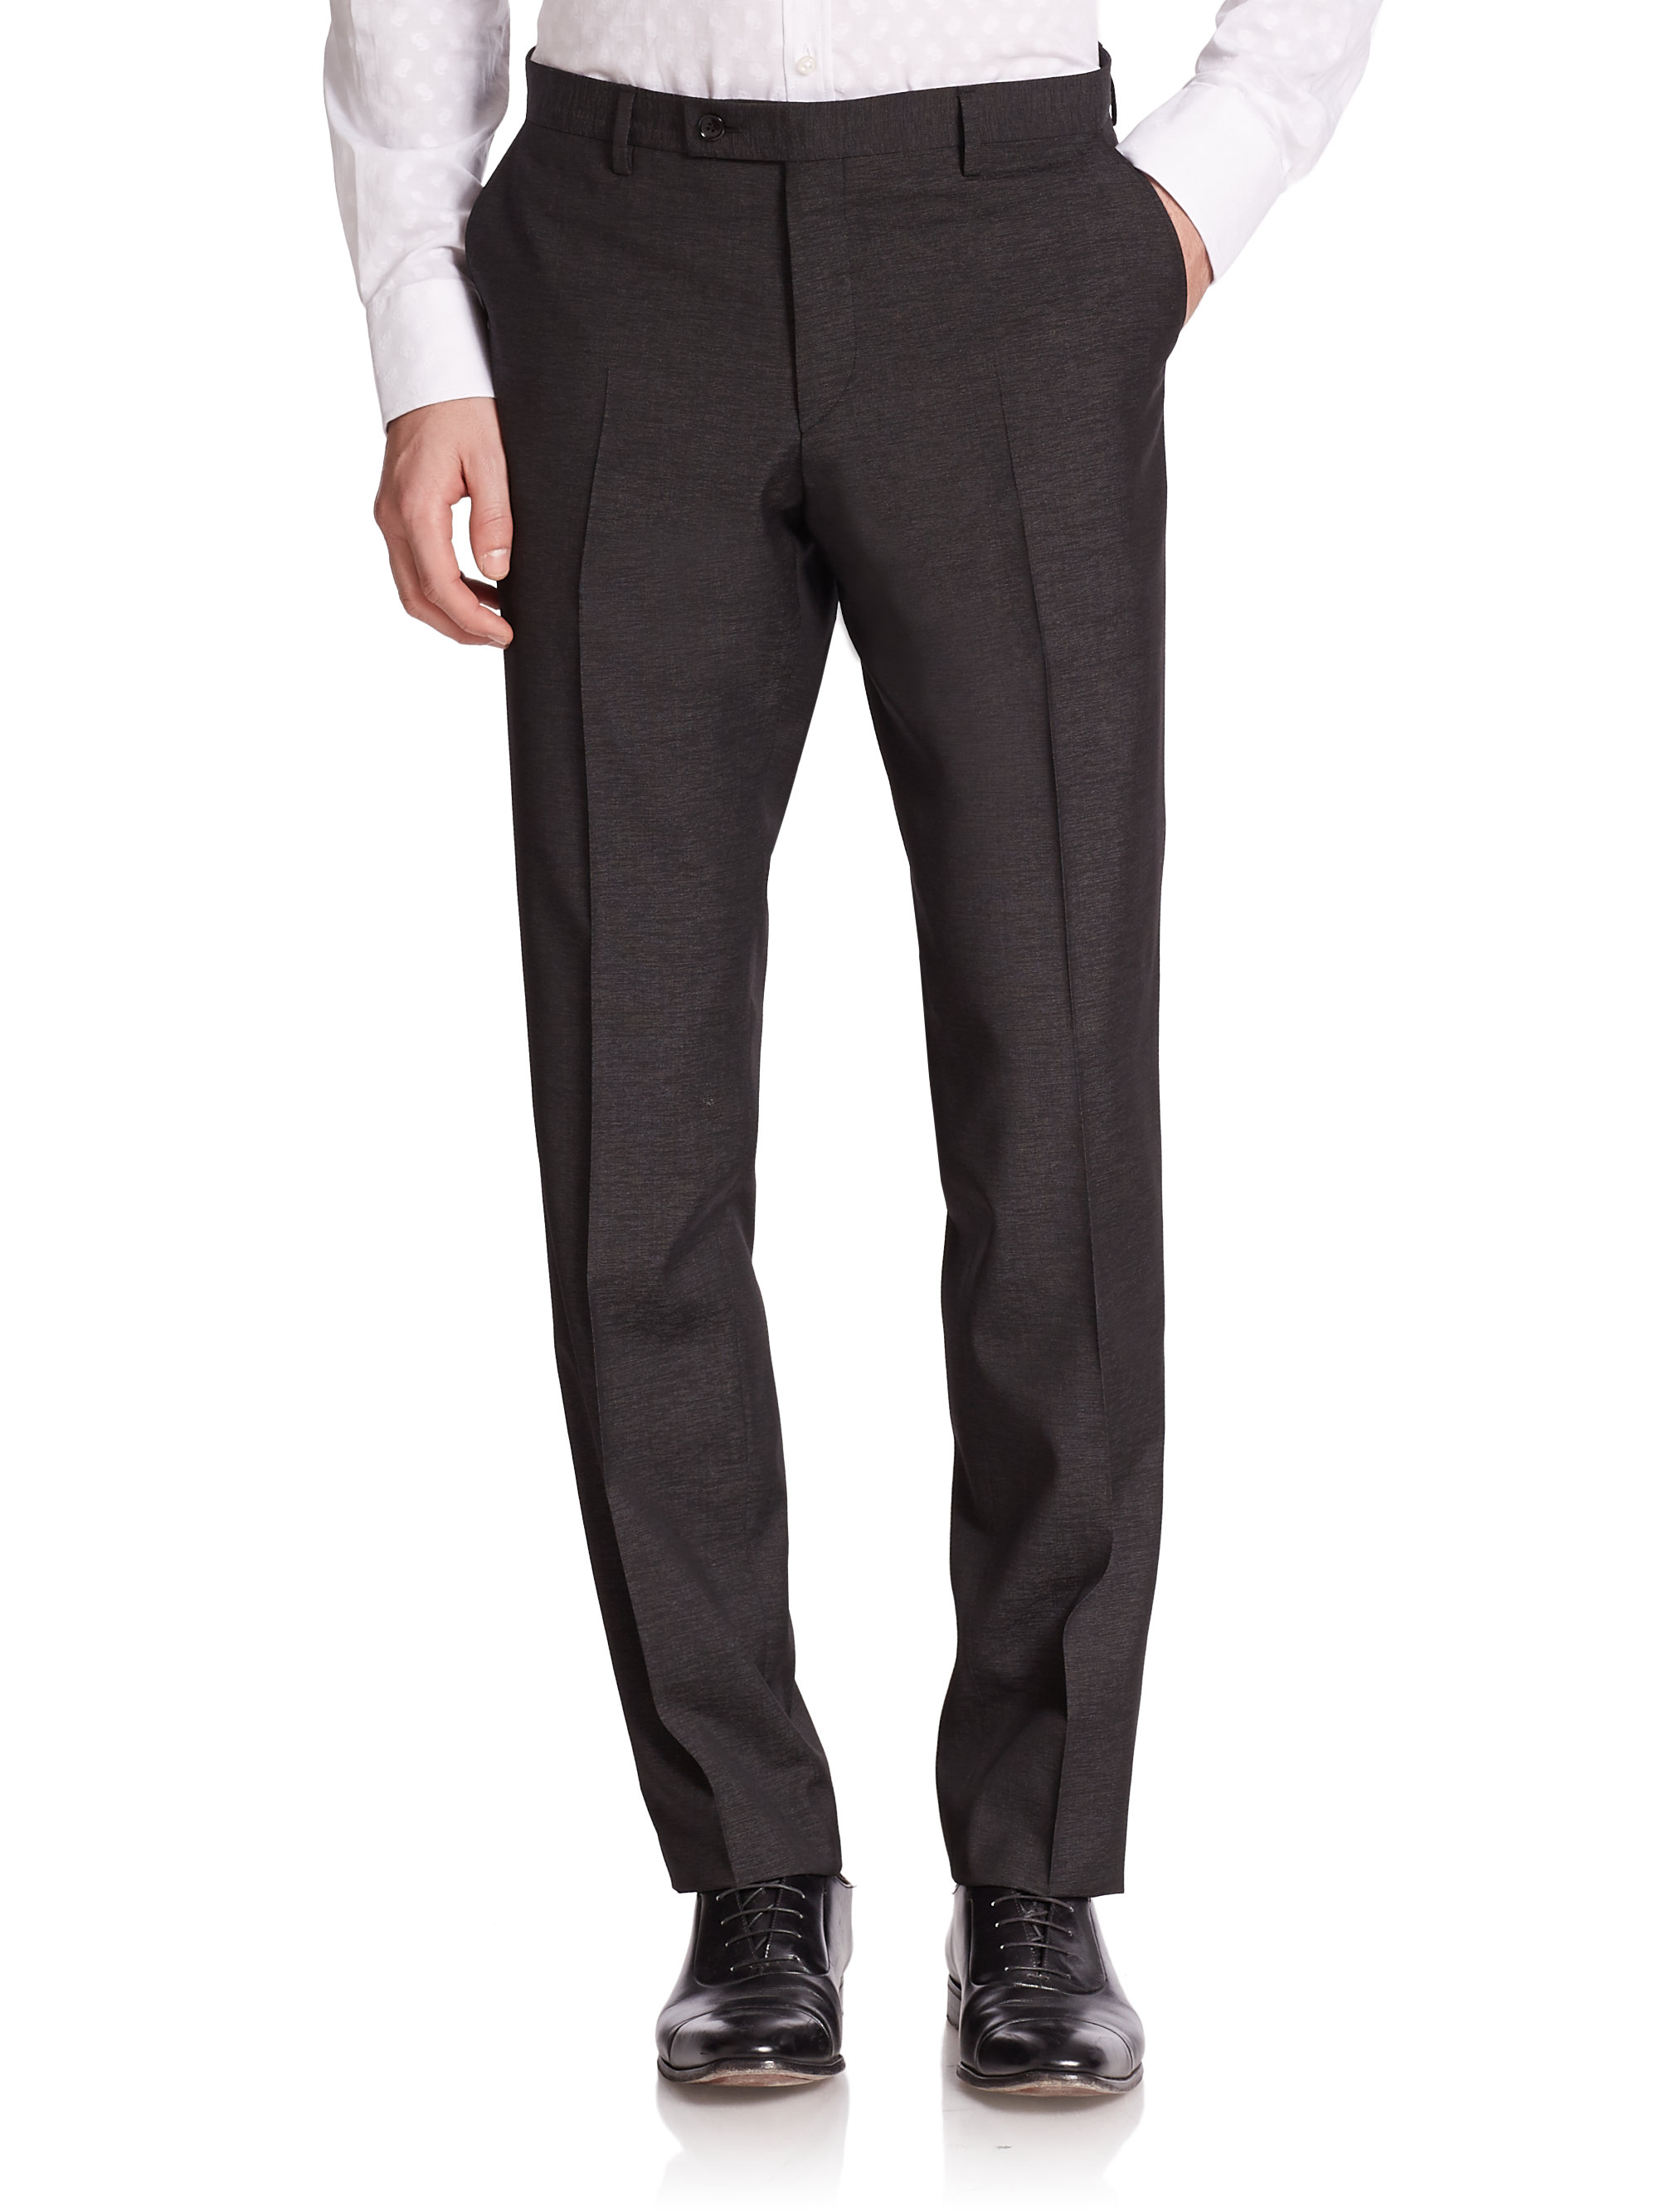 Free shipping on men's dress pants at manakamanamobilecenter.tk Shop flat-front & pleated pants in cotton, wool & more. Totally free shipping & returns.